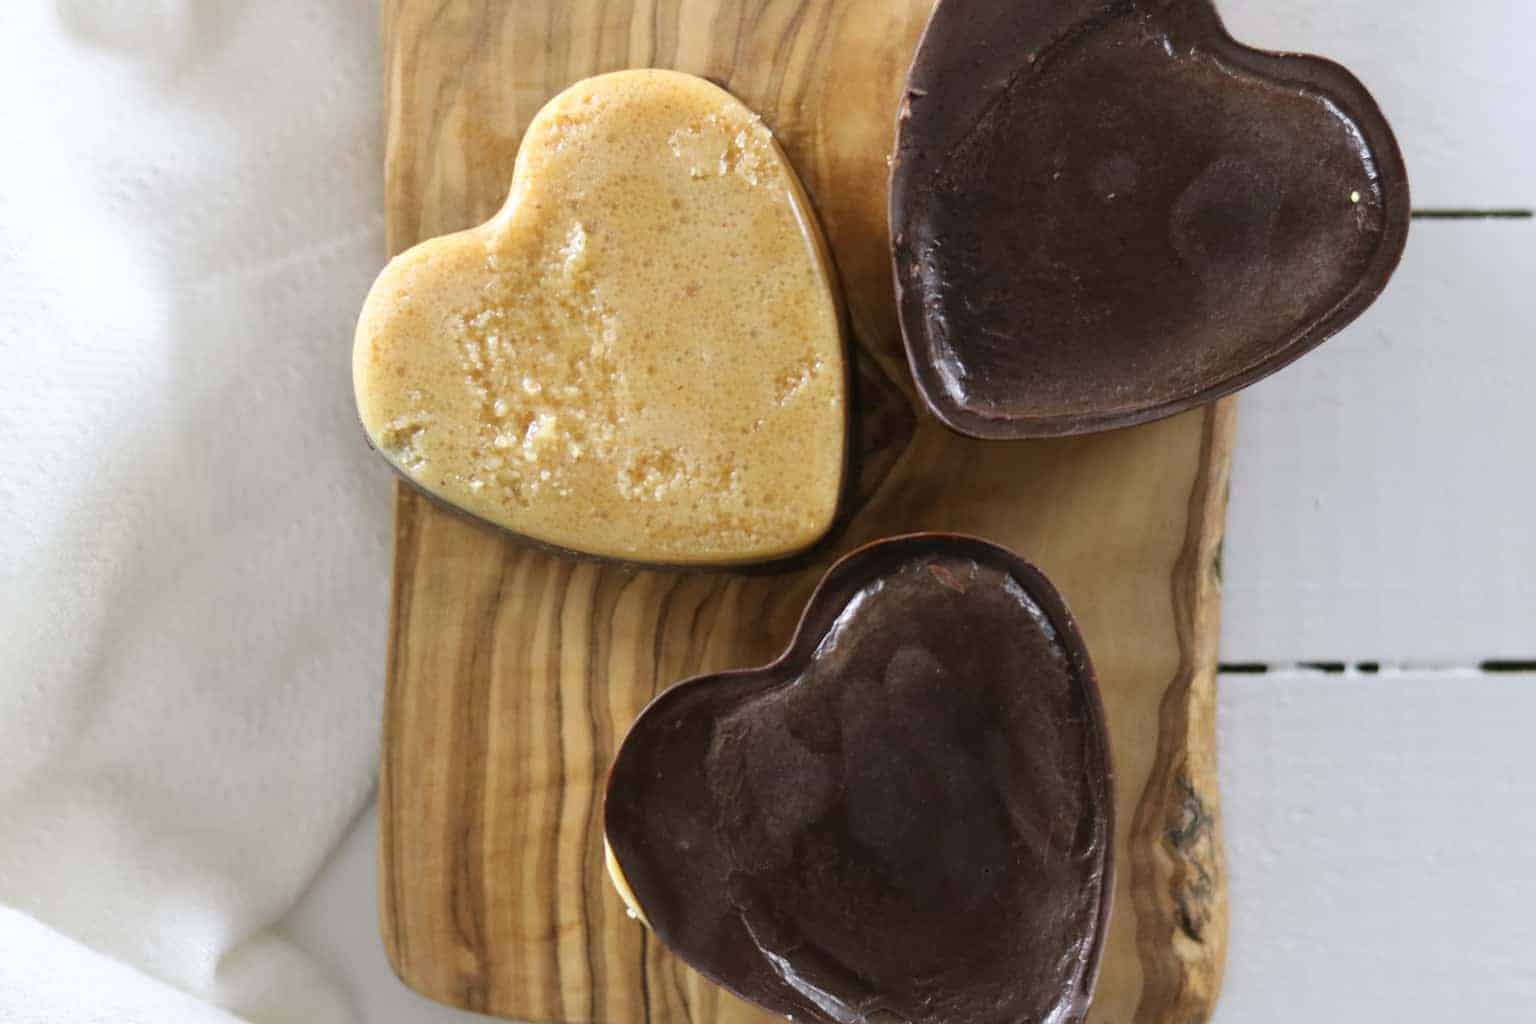 Learn how to make a kid friendly, paleo chocolate peanut butter shape heart. This dessert is made with less than 5 ingredients.